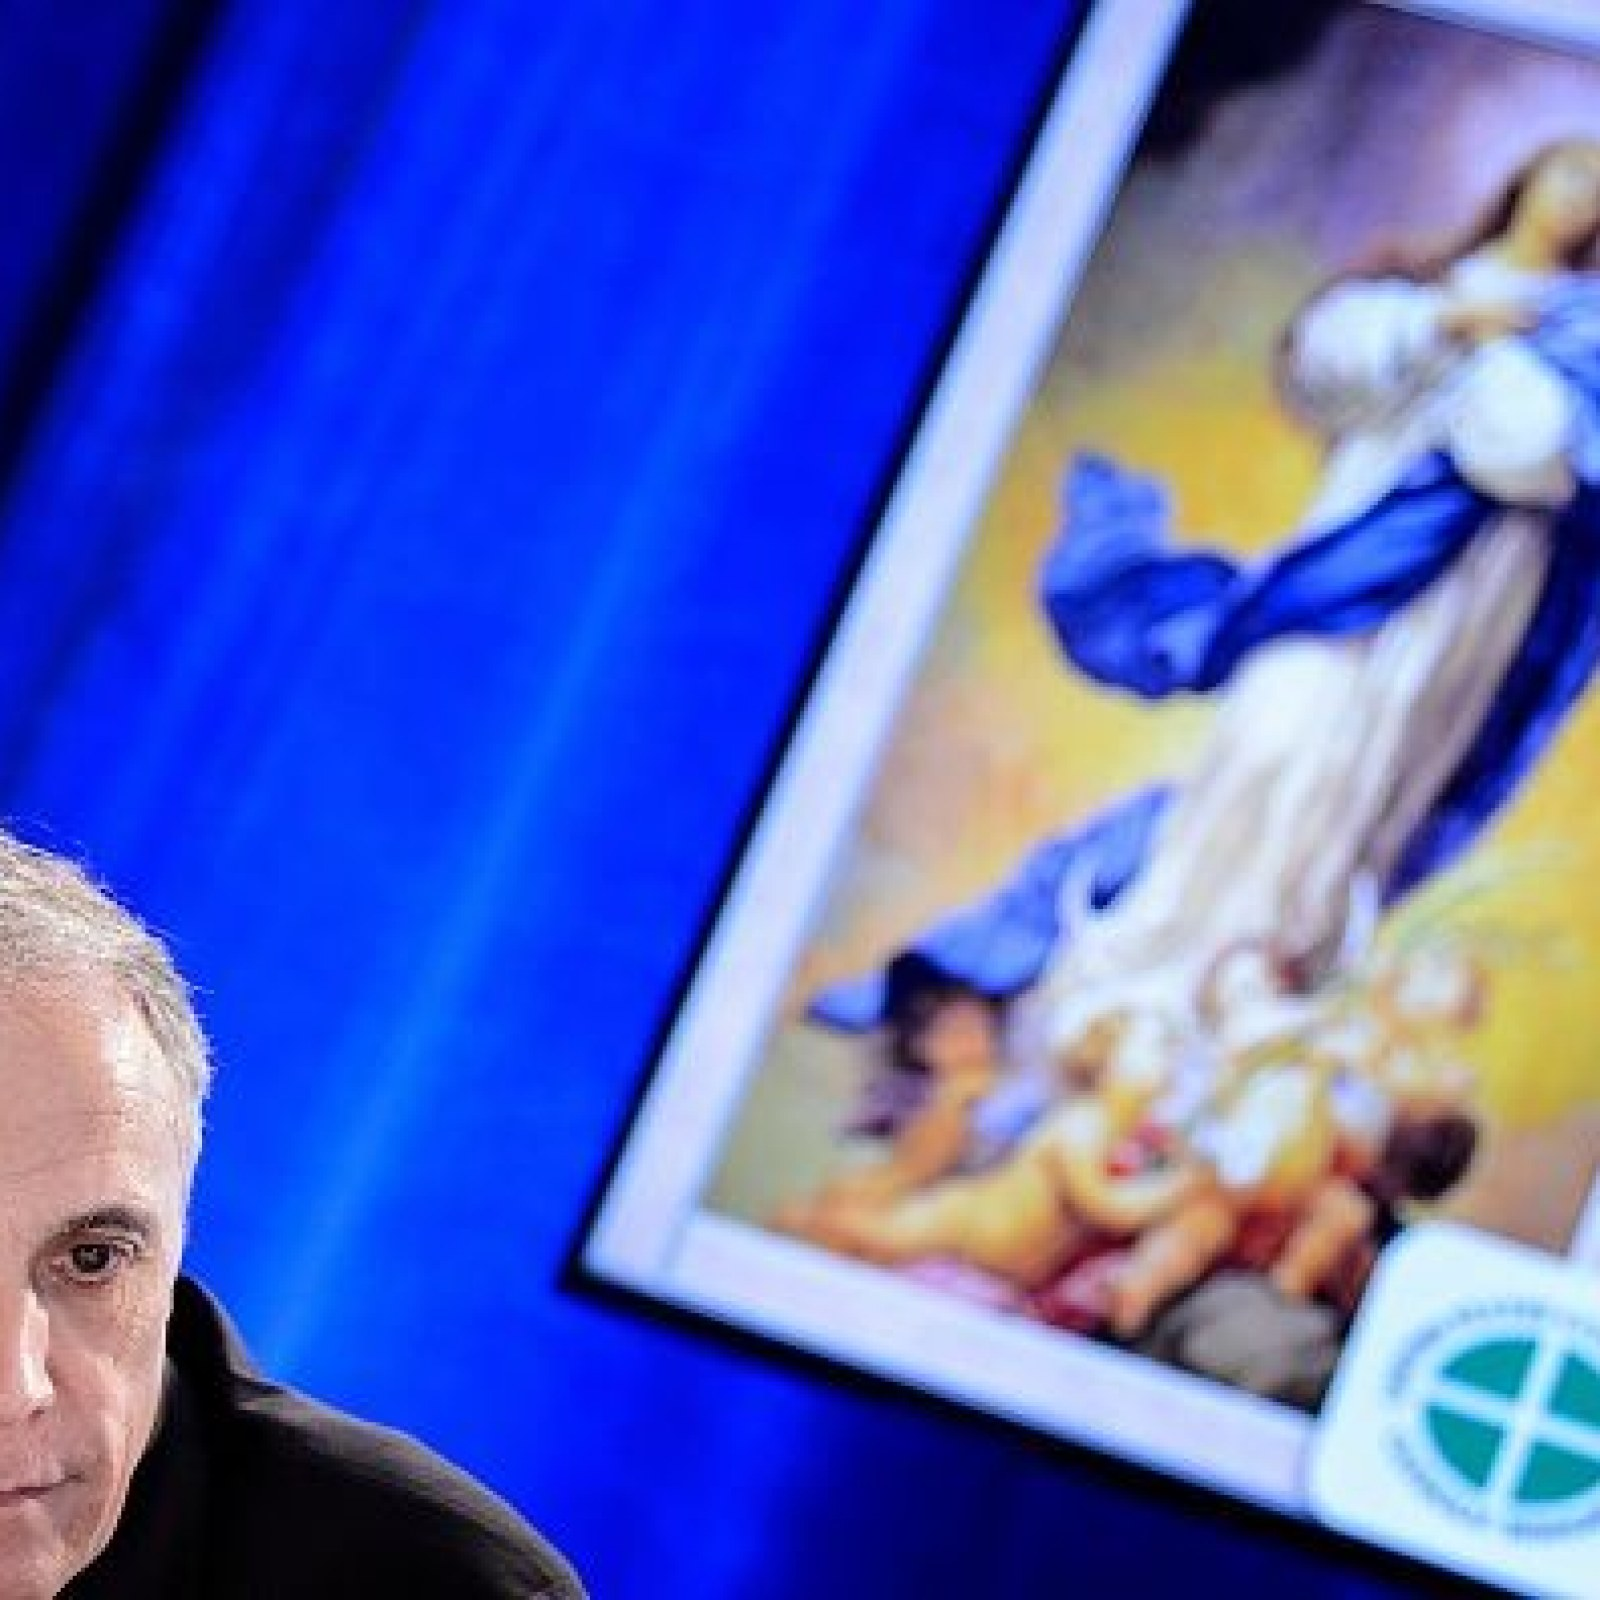 286 Texas Catholic Priests Accused of Sexual Abuse